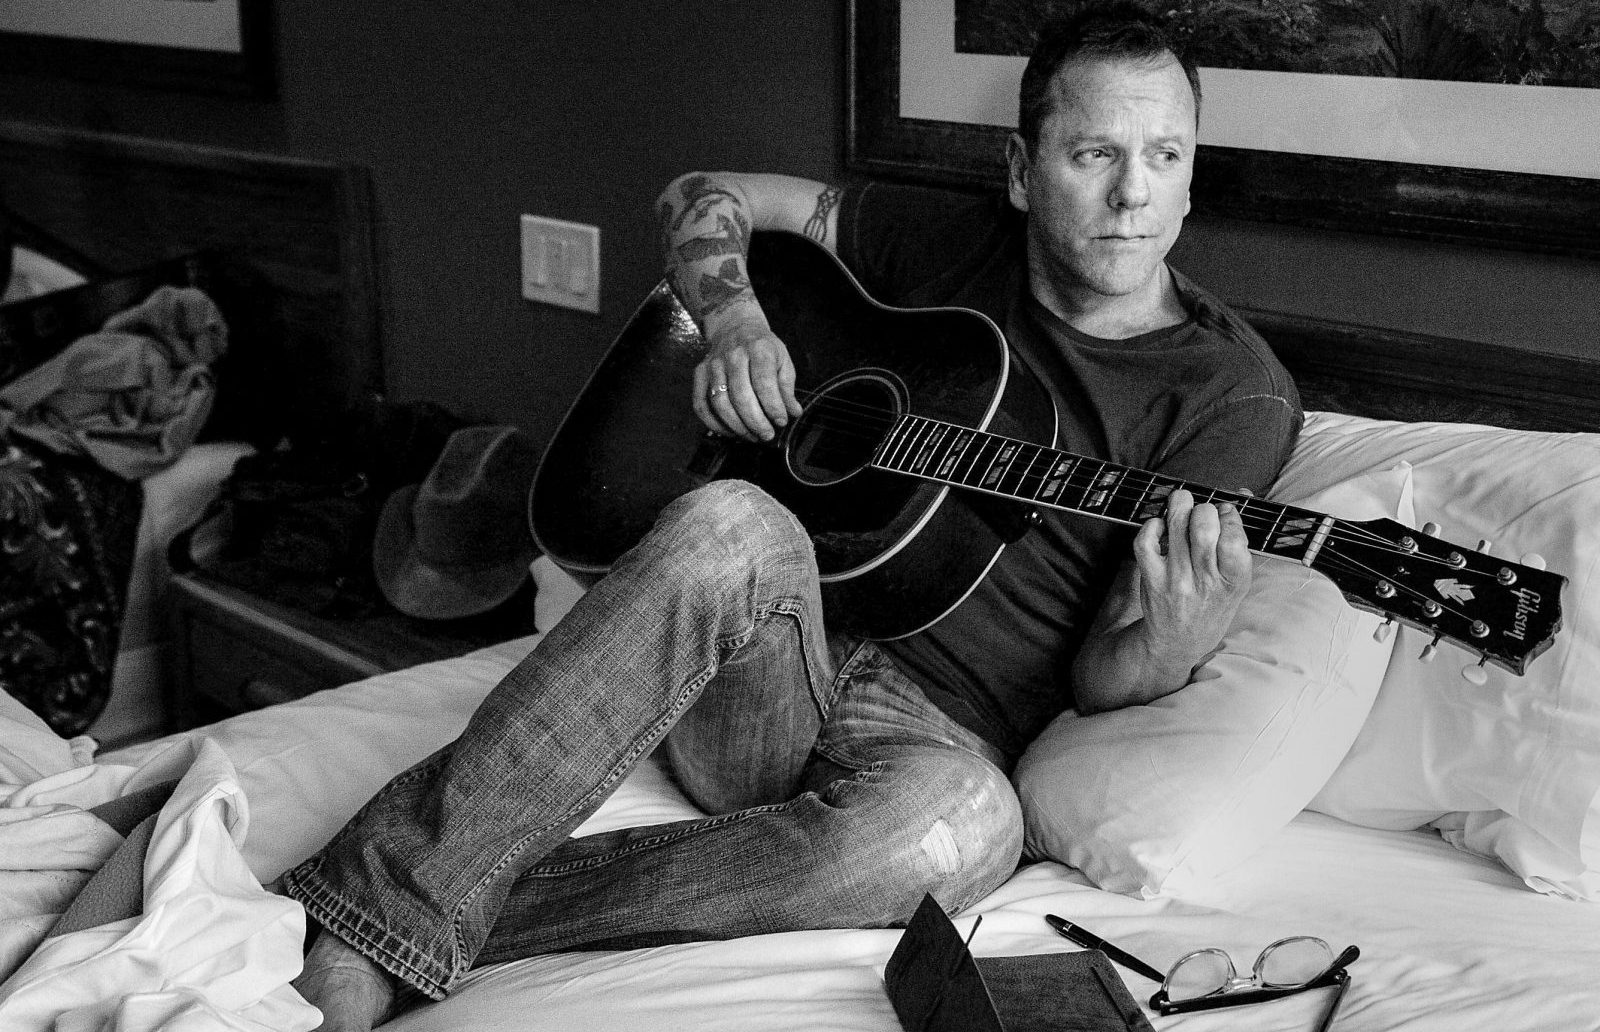 Kiefer Sutherland and his band with play the Seneca Niagara Casino Bear's Den on Feb. 18.